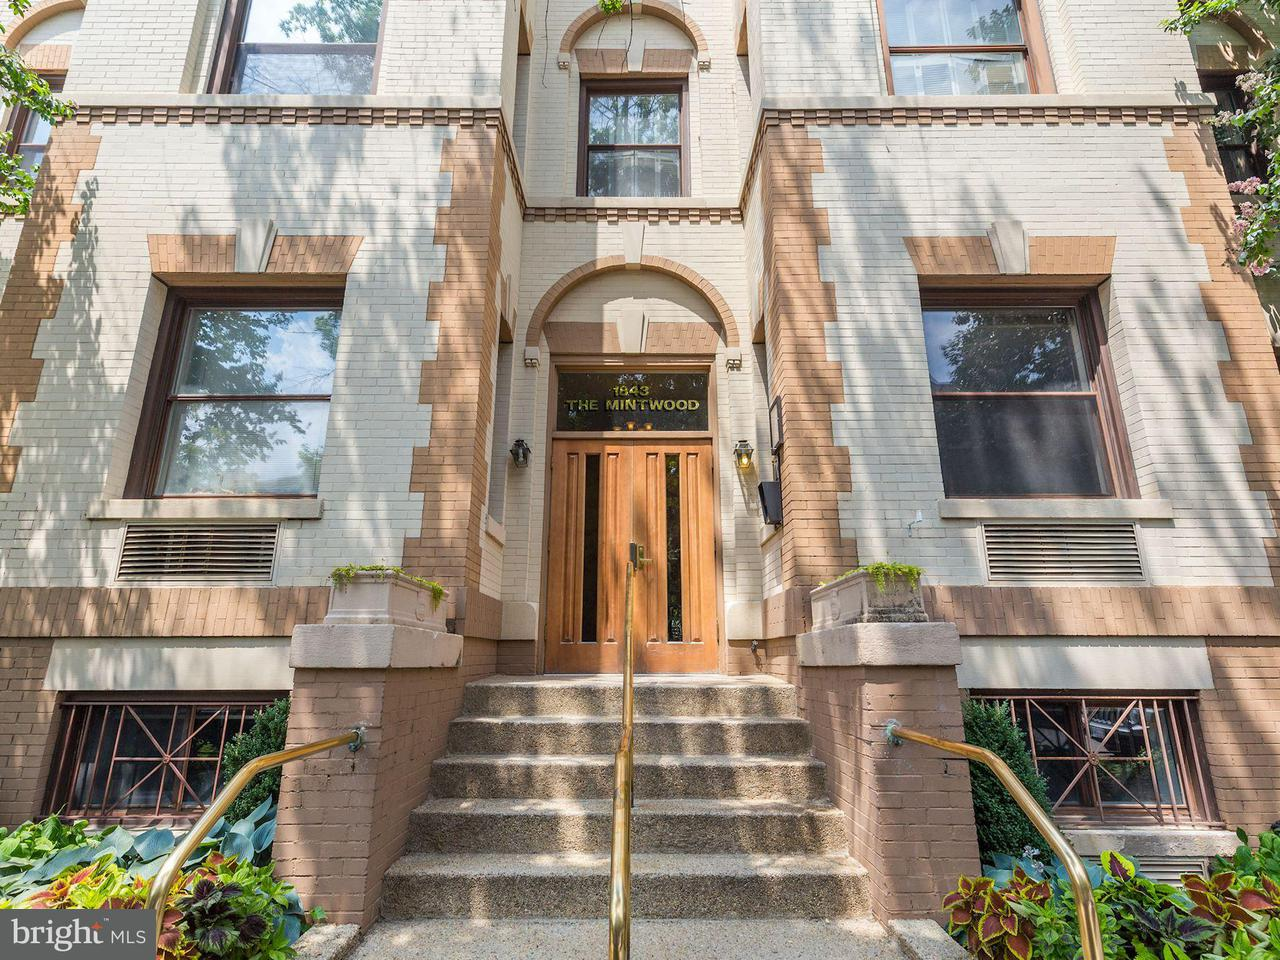 Condominium for Sale at 1843 Mintwood Pl Nw #205 1843 Mintwood Pl Nw #205 Washington, District Of Columbia 20009 United States